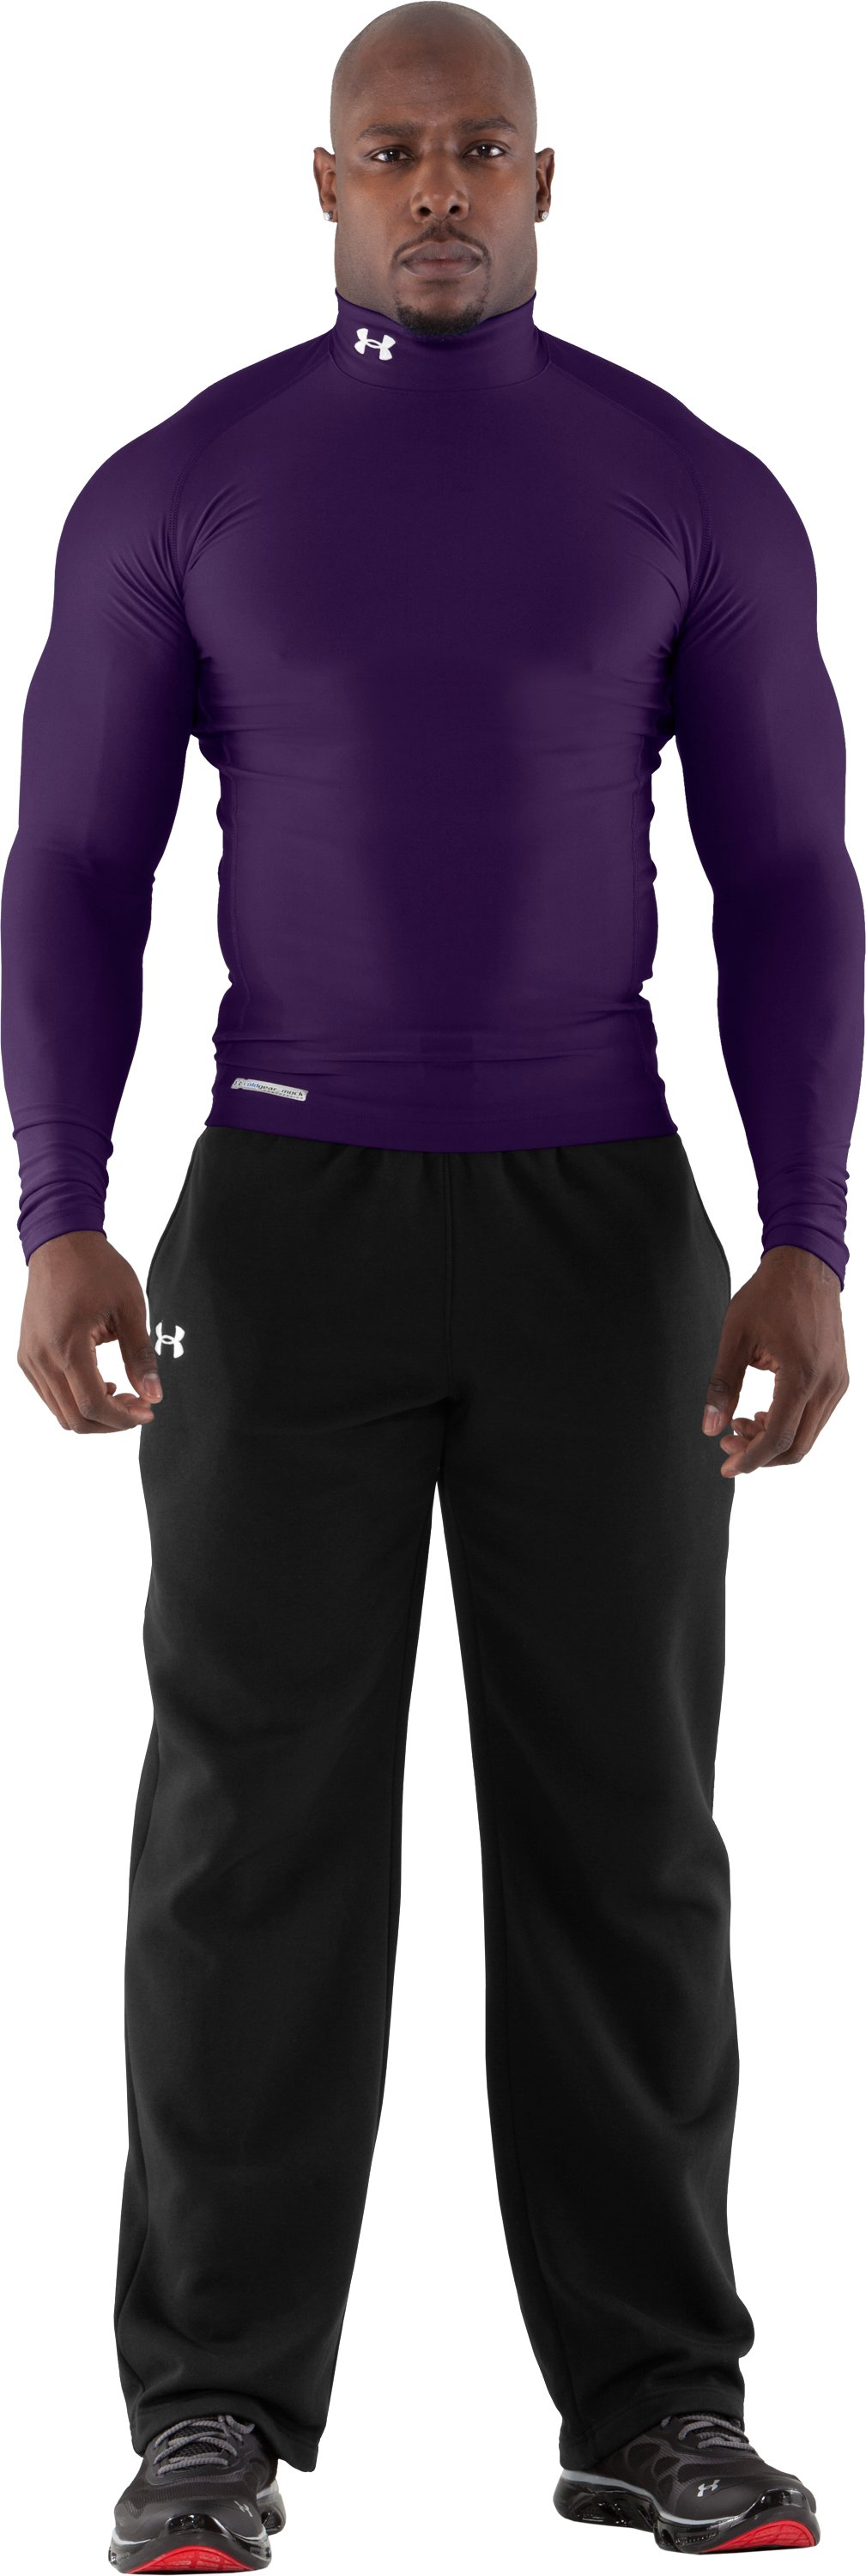 Men's ColdGear® Evo Long Sleeve Compression Mock, Purple